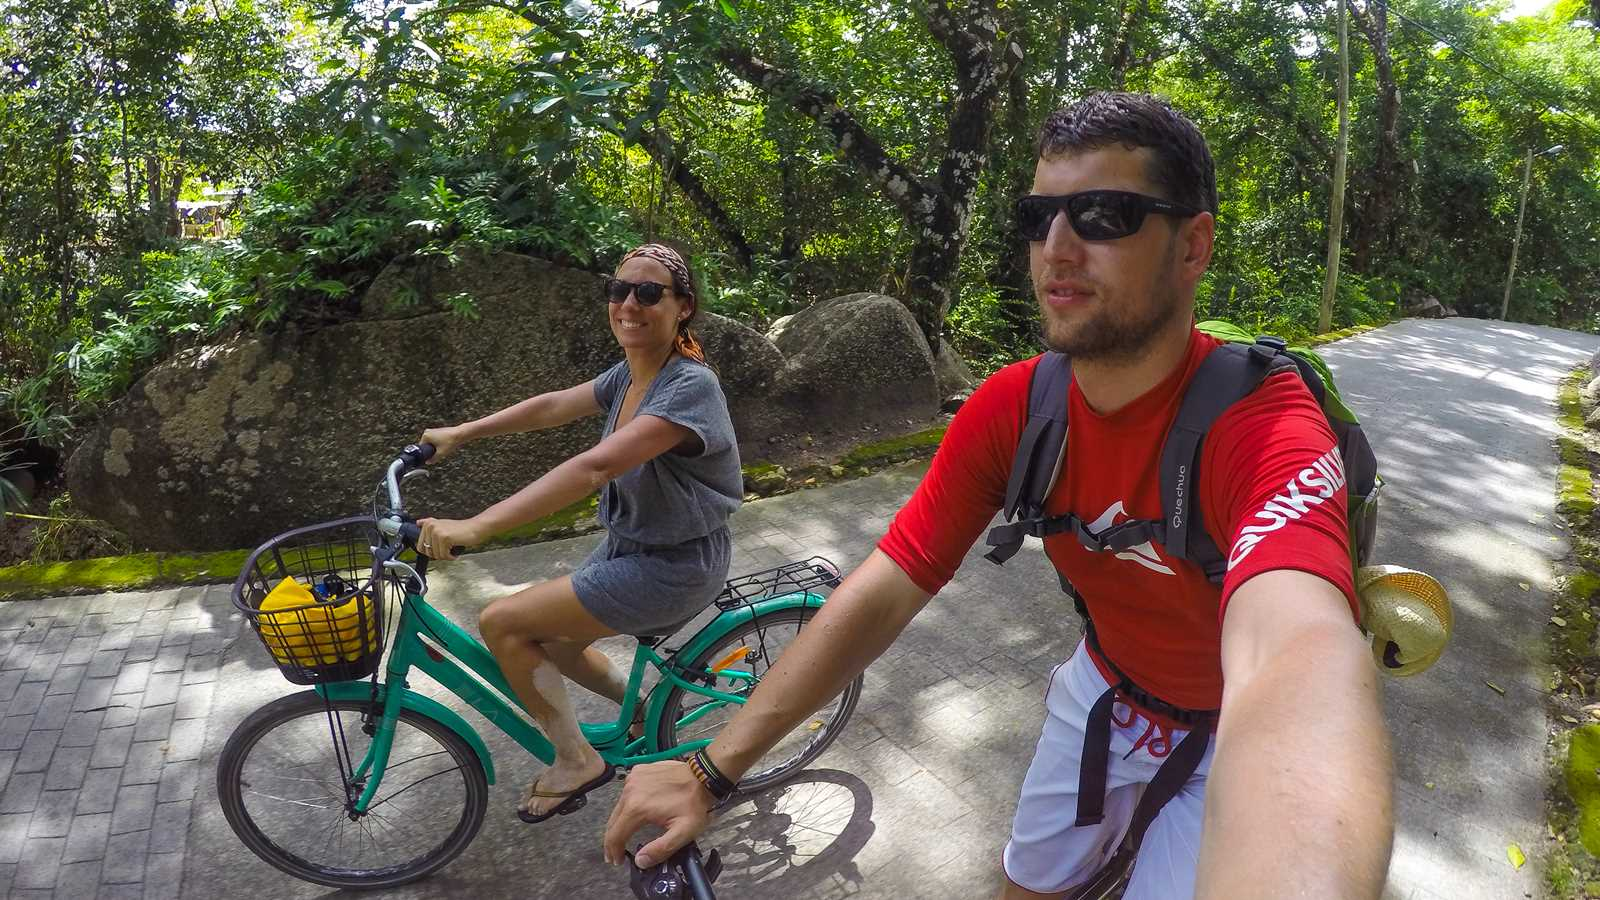 Biking on La Digue island in Seychelles